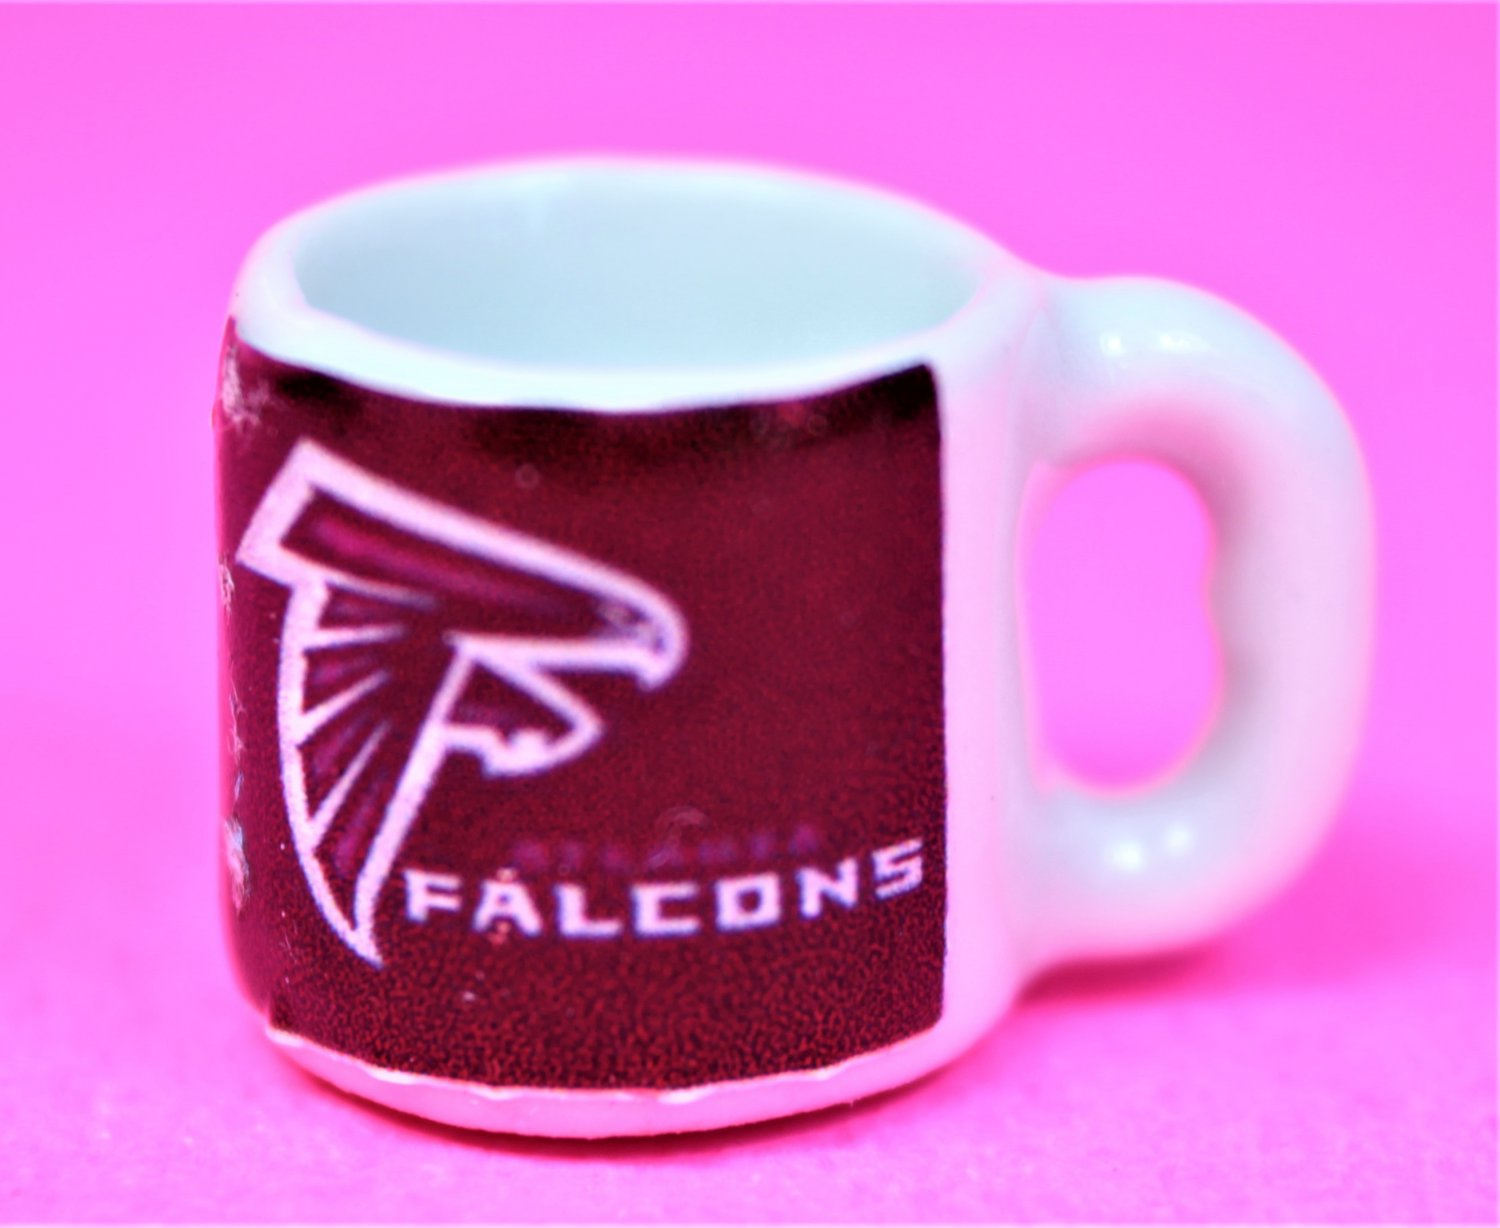 "Dollhouse miniature size 1/12"" scale replica Falcons sports coffee mug"